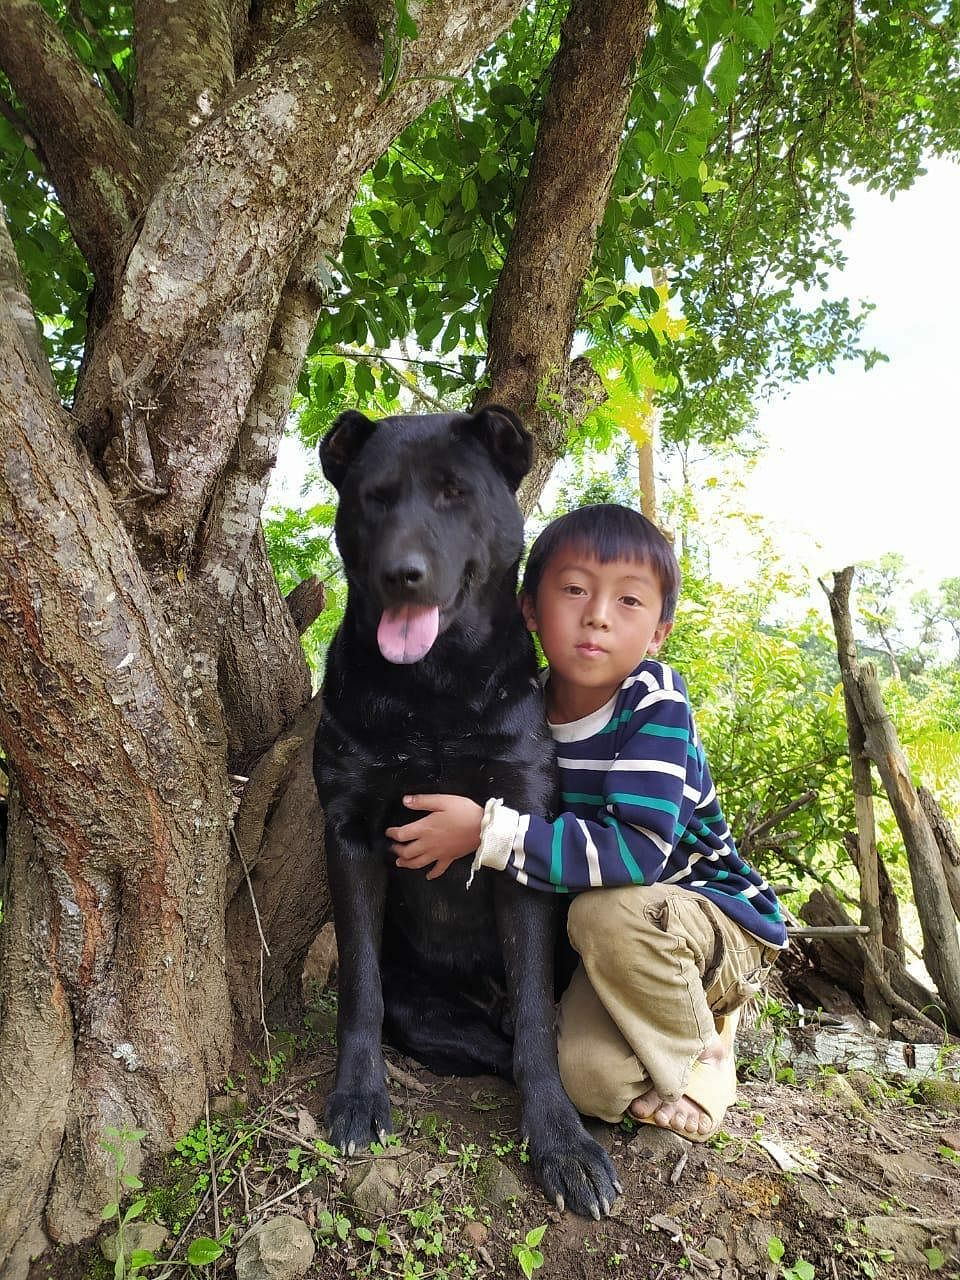 Known as Haofa, a local breed among the Tangkhul community